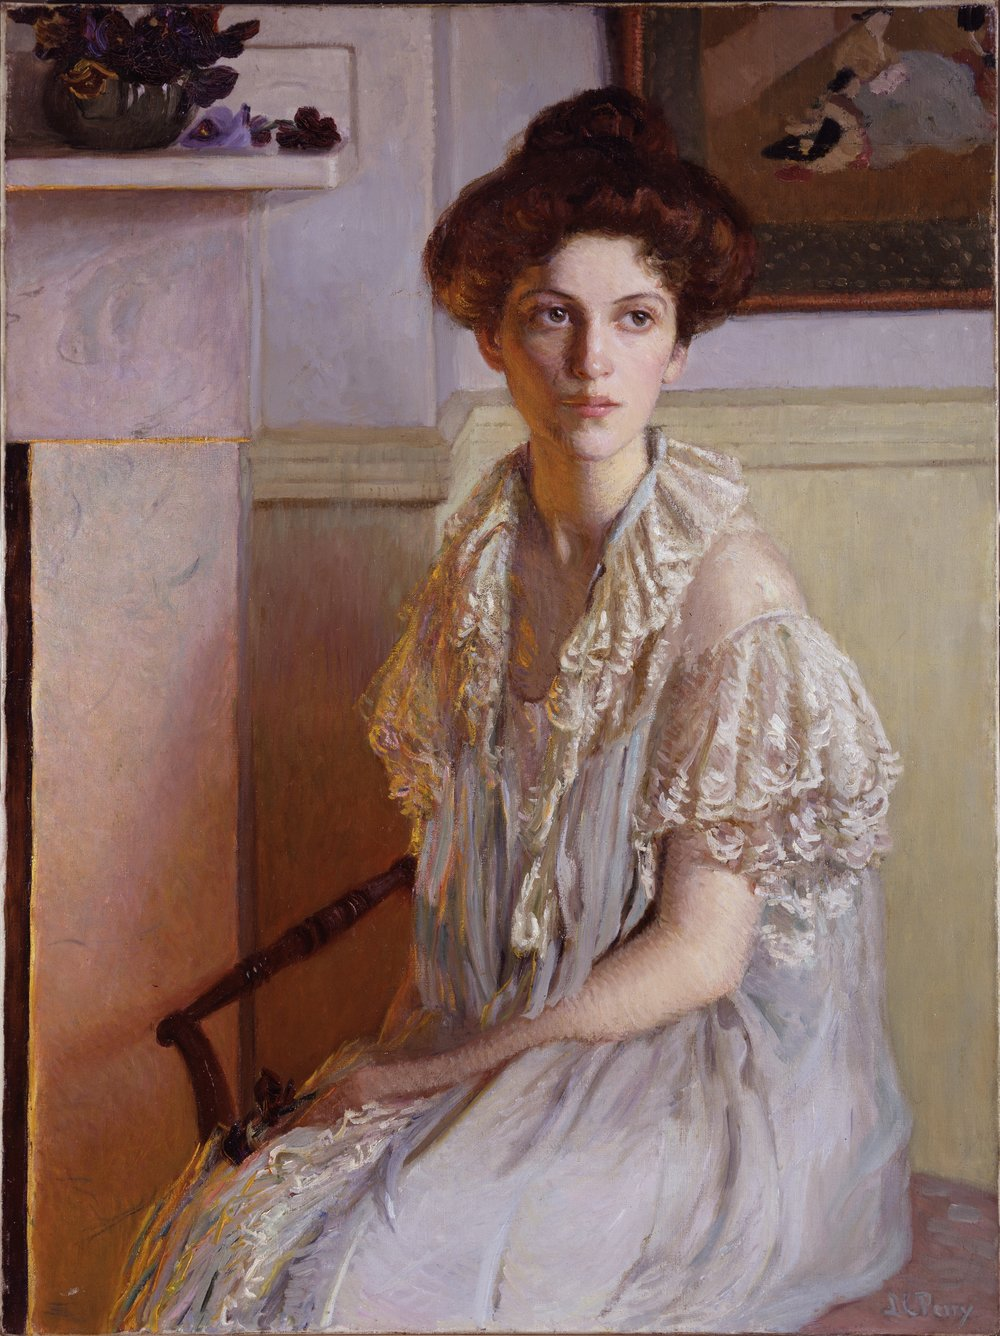 Lady with a Bowl of Violets,  1910, Lila Cabot Perry, (Image courtesy of the National Museum of Women in the Arts)